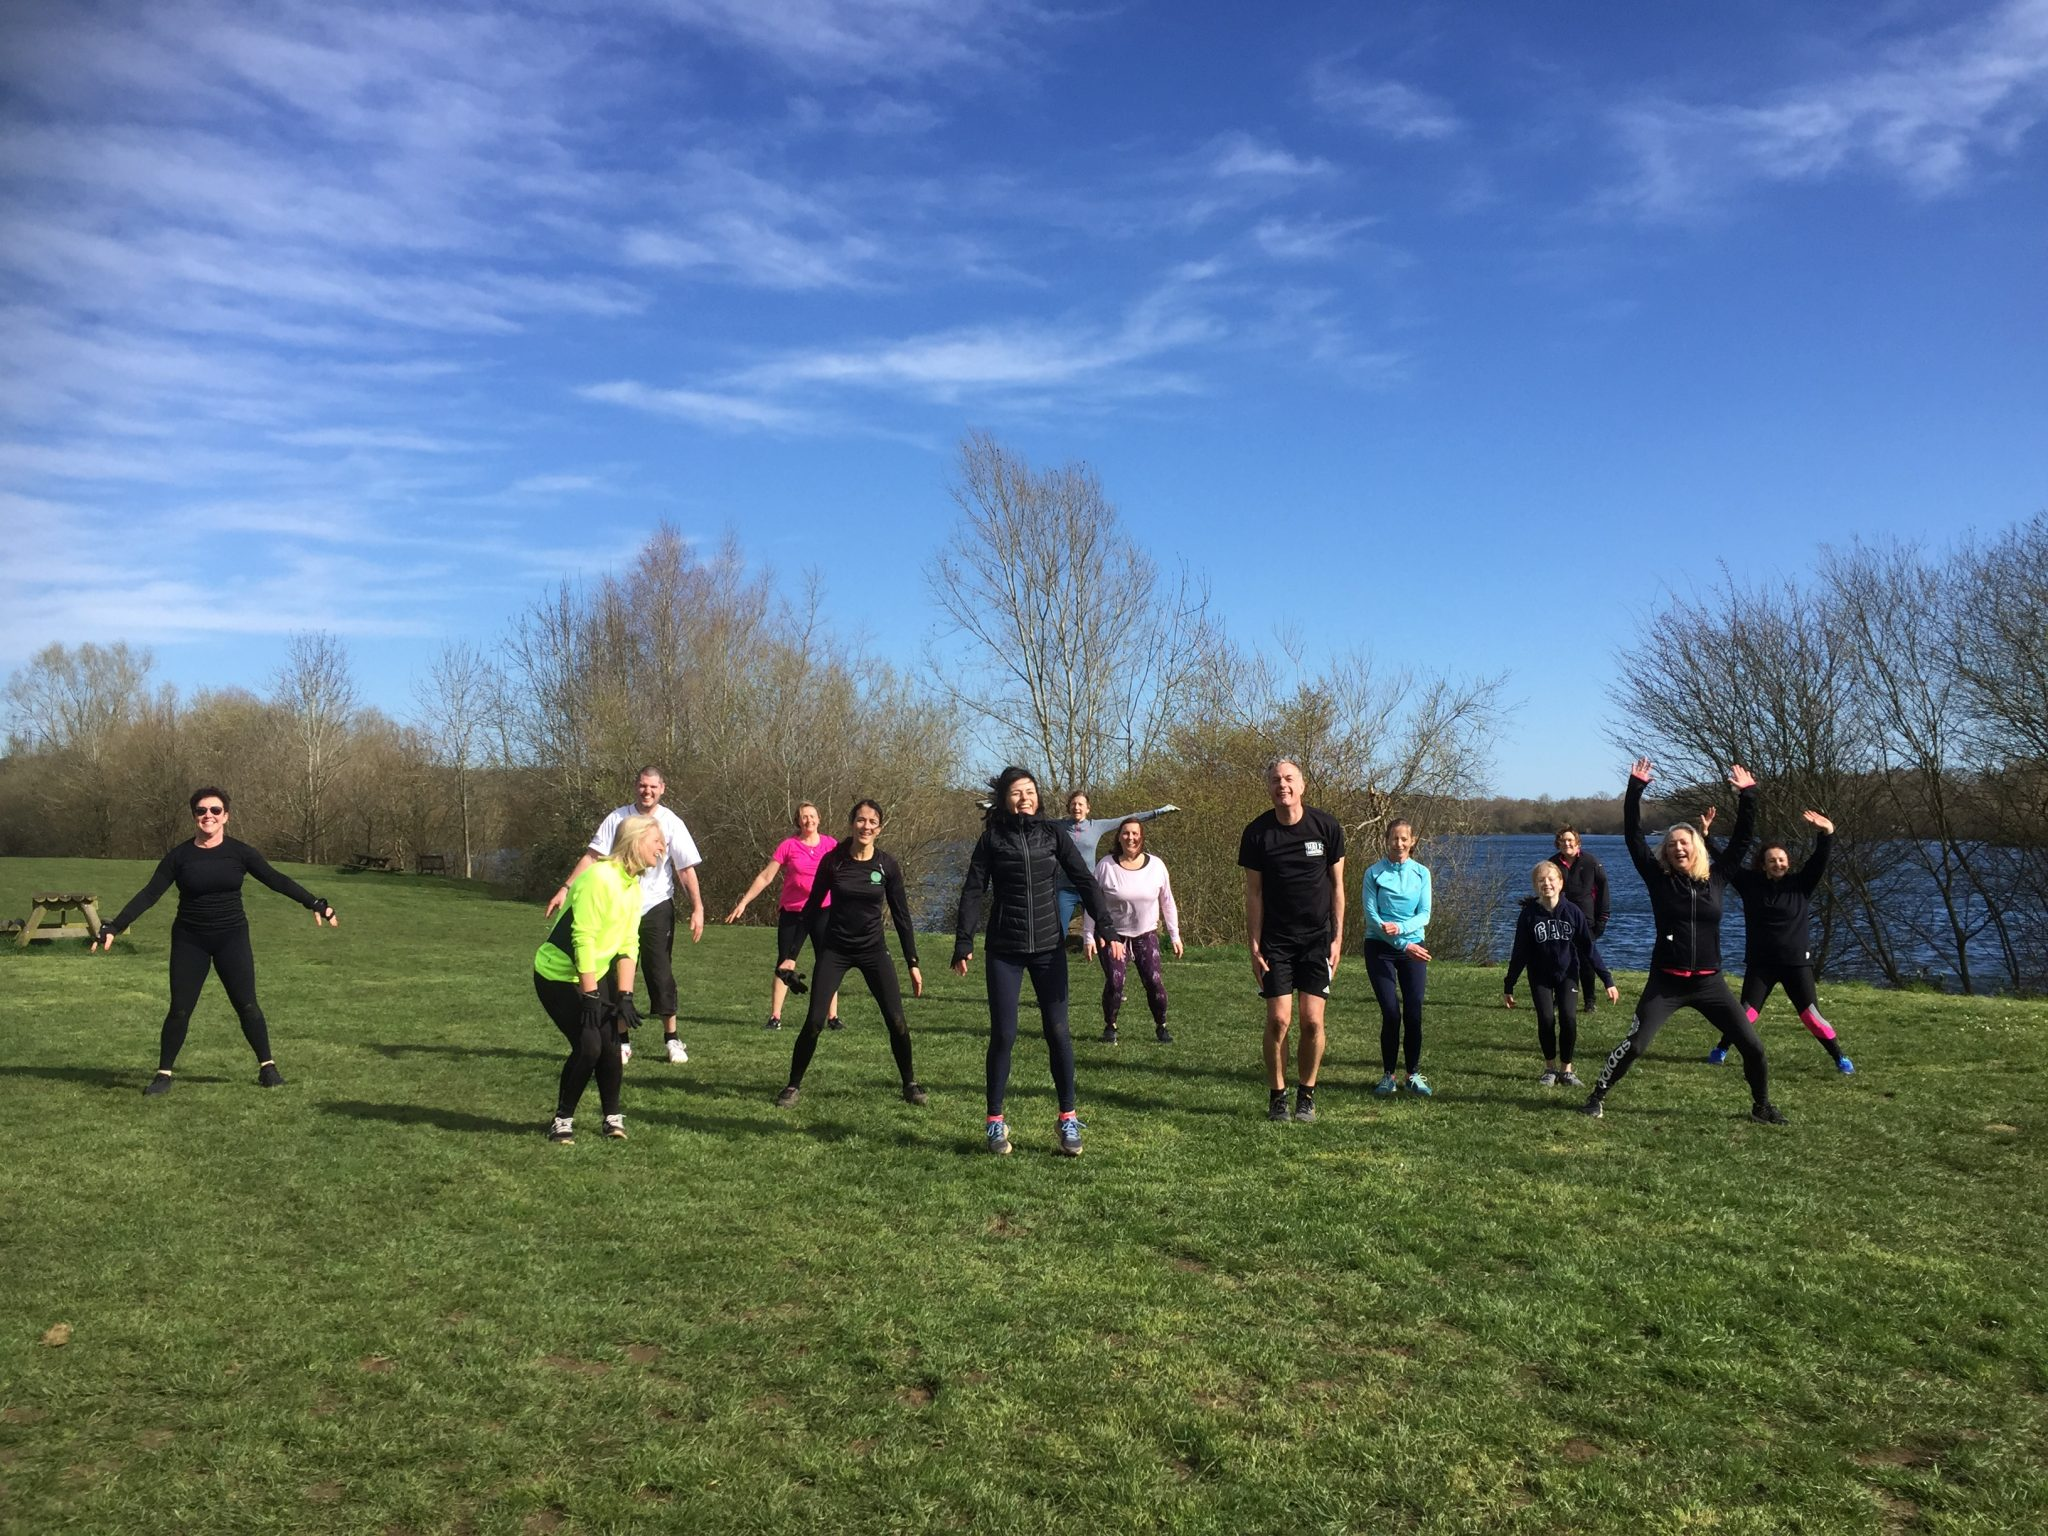 It's official – it's fine to work out in the park